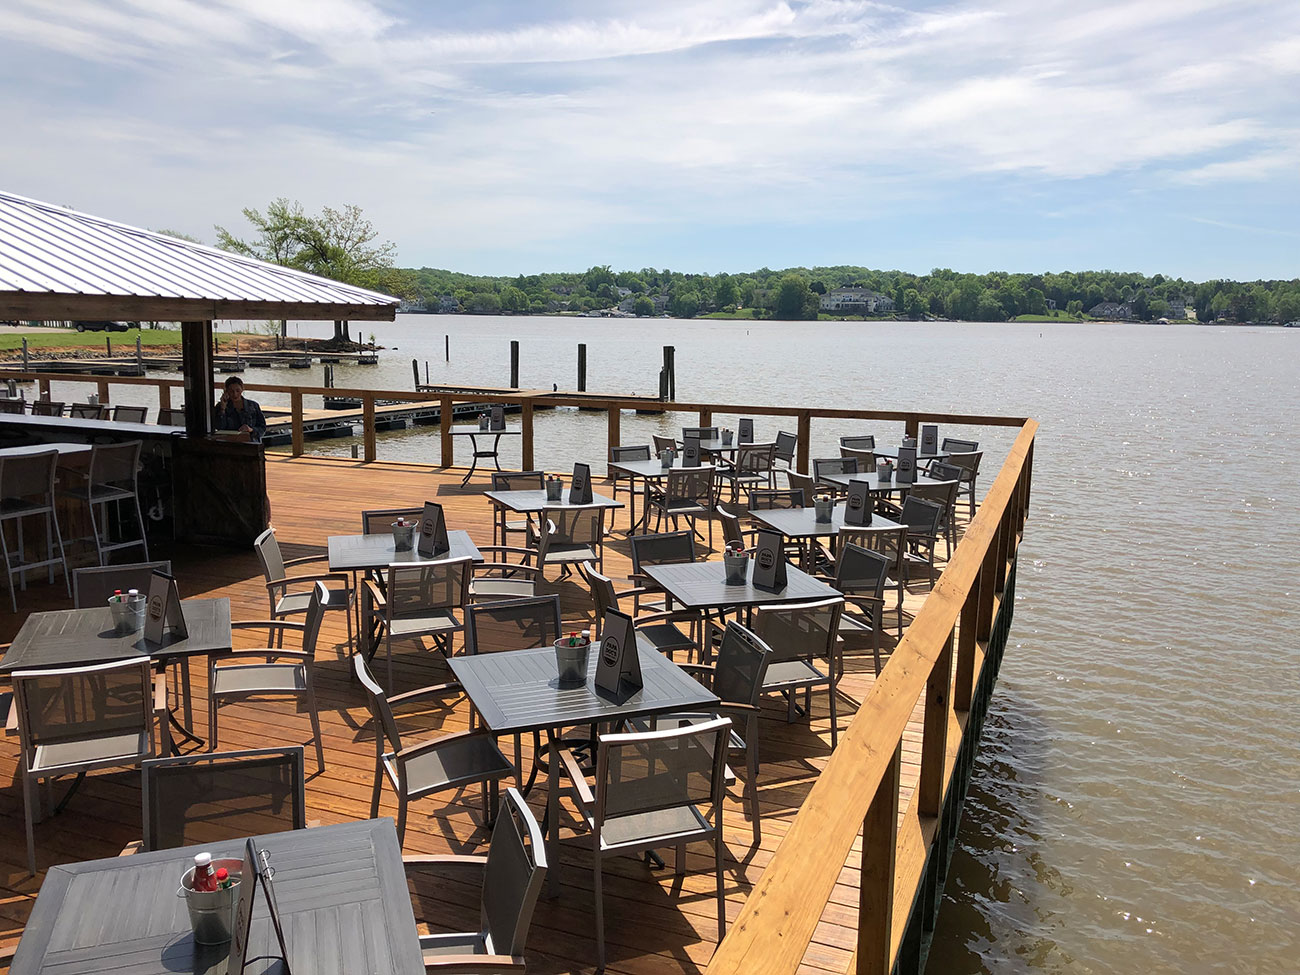 The ultimate guide to beaches, water activities and lakeside restaurants on Lake Norman and Lake Wylie